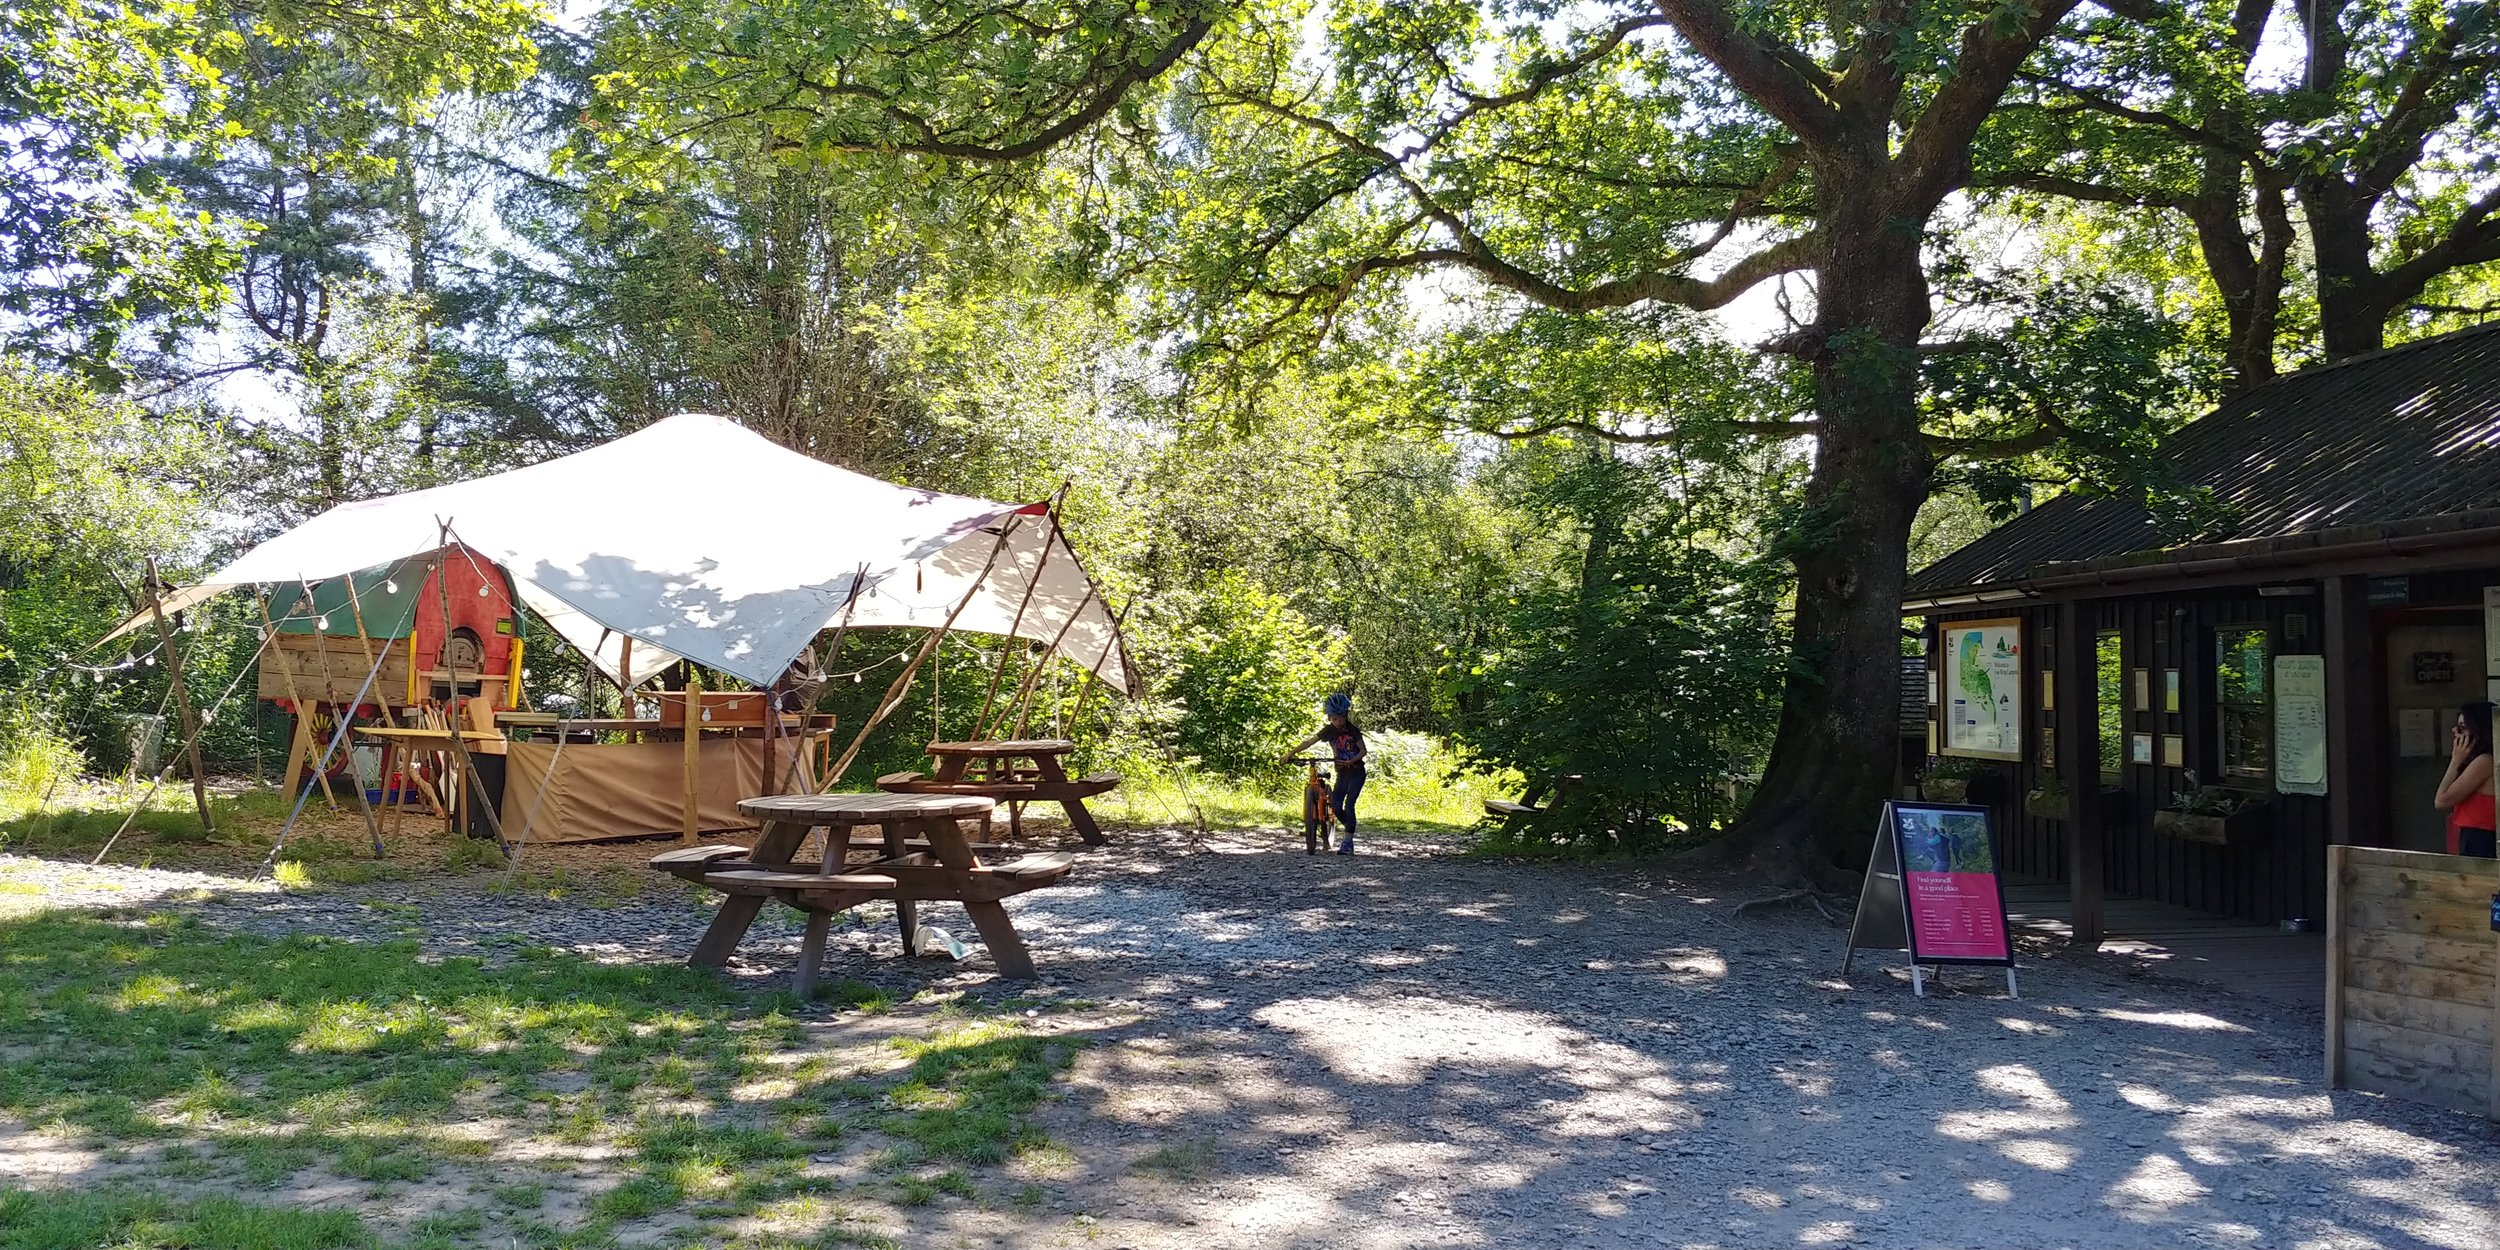 Low Wray reception and shop on the right. You can freeze ice packs in the little freezer outside.